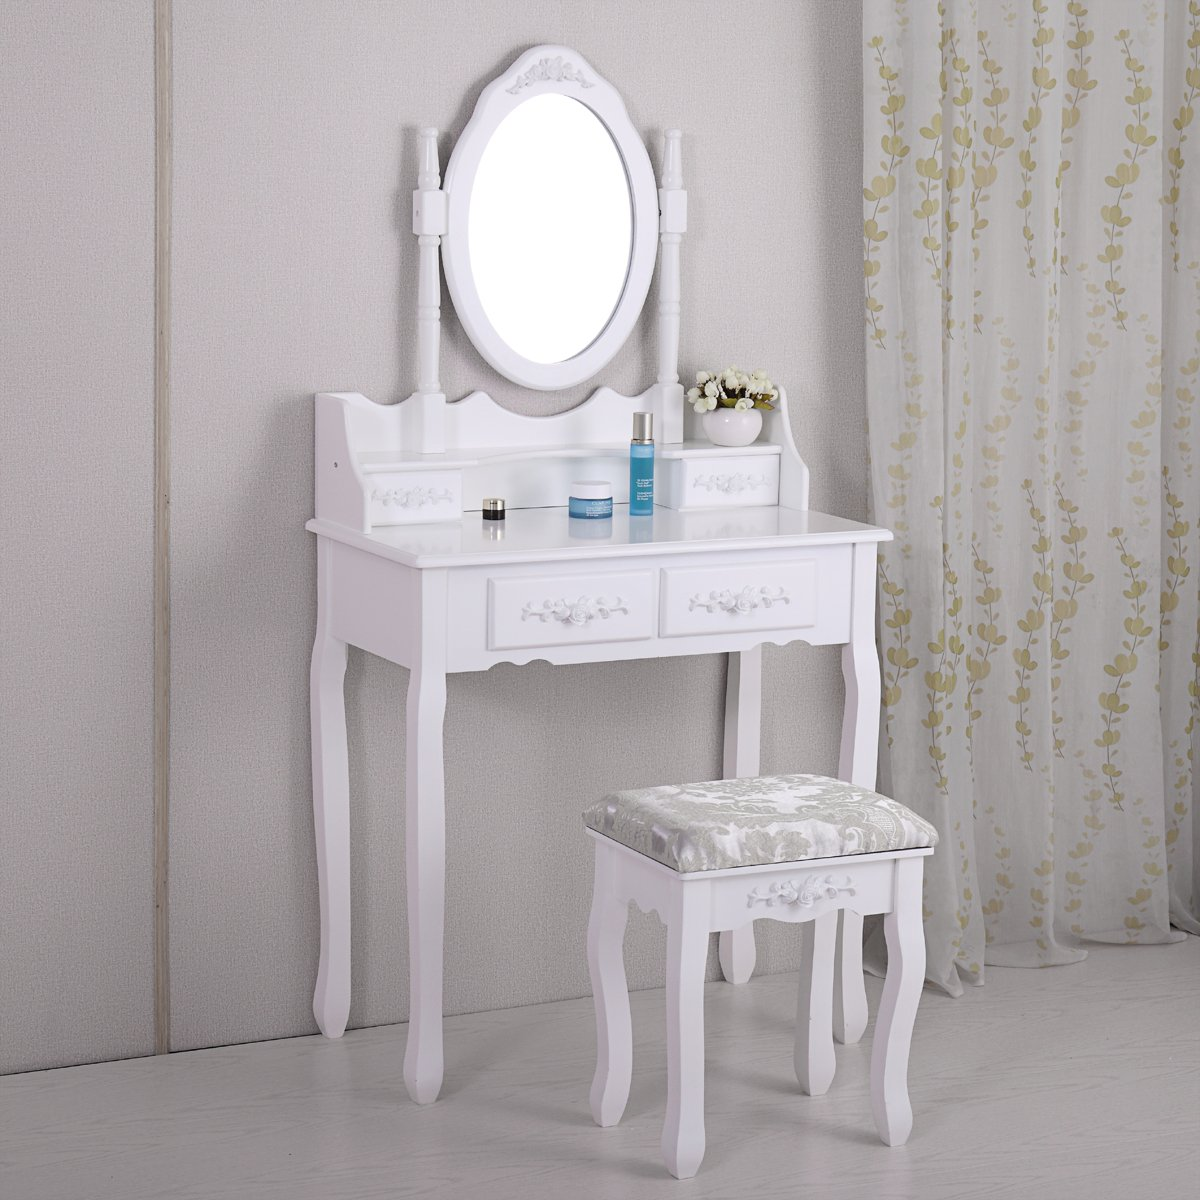 LAZYMOON Vanity Table Set Makeup Desk Oval Mirror Table Set With Stool Bench White Finish